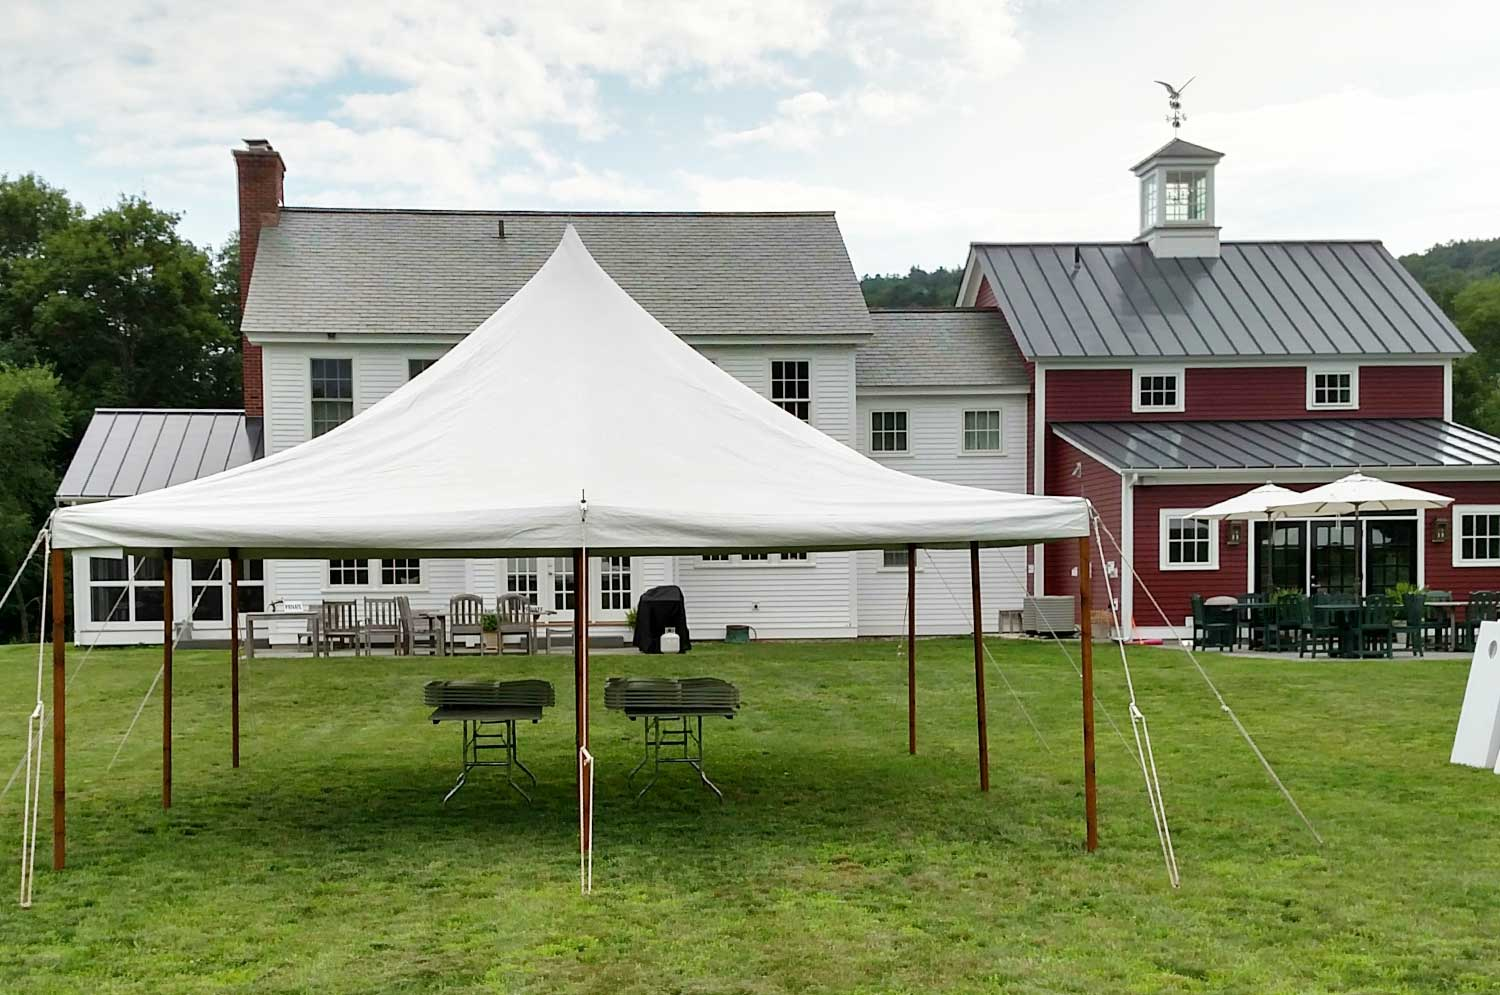 Party rental for business event in Washington County, NY